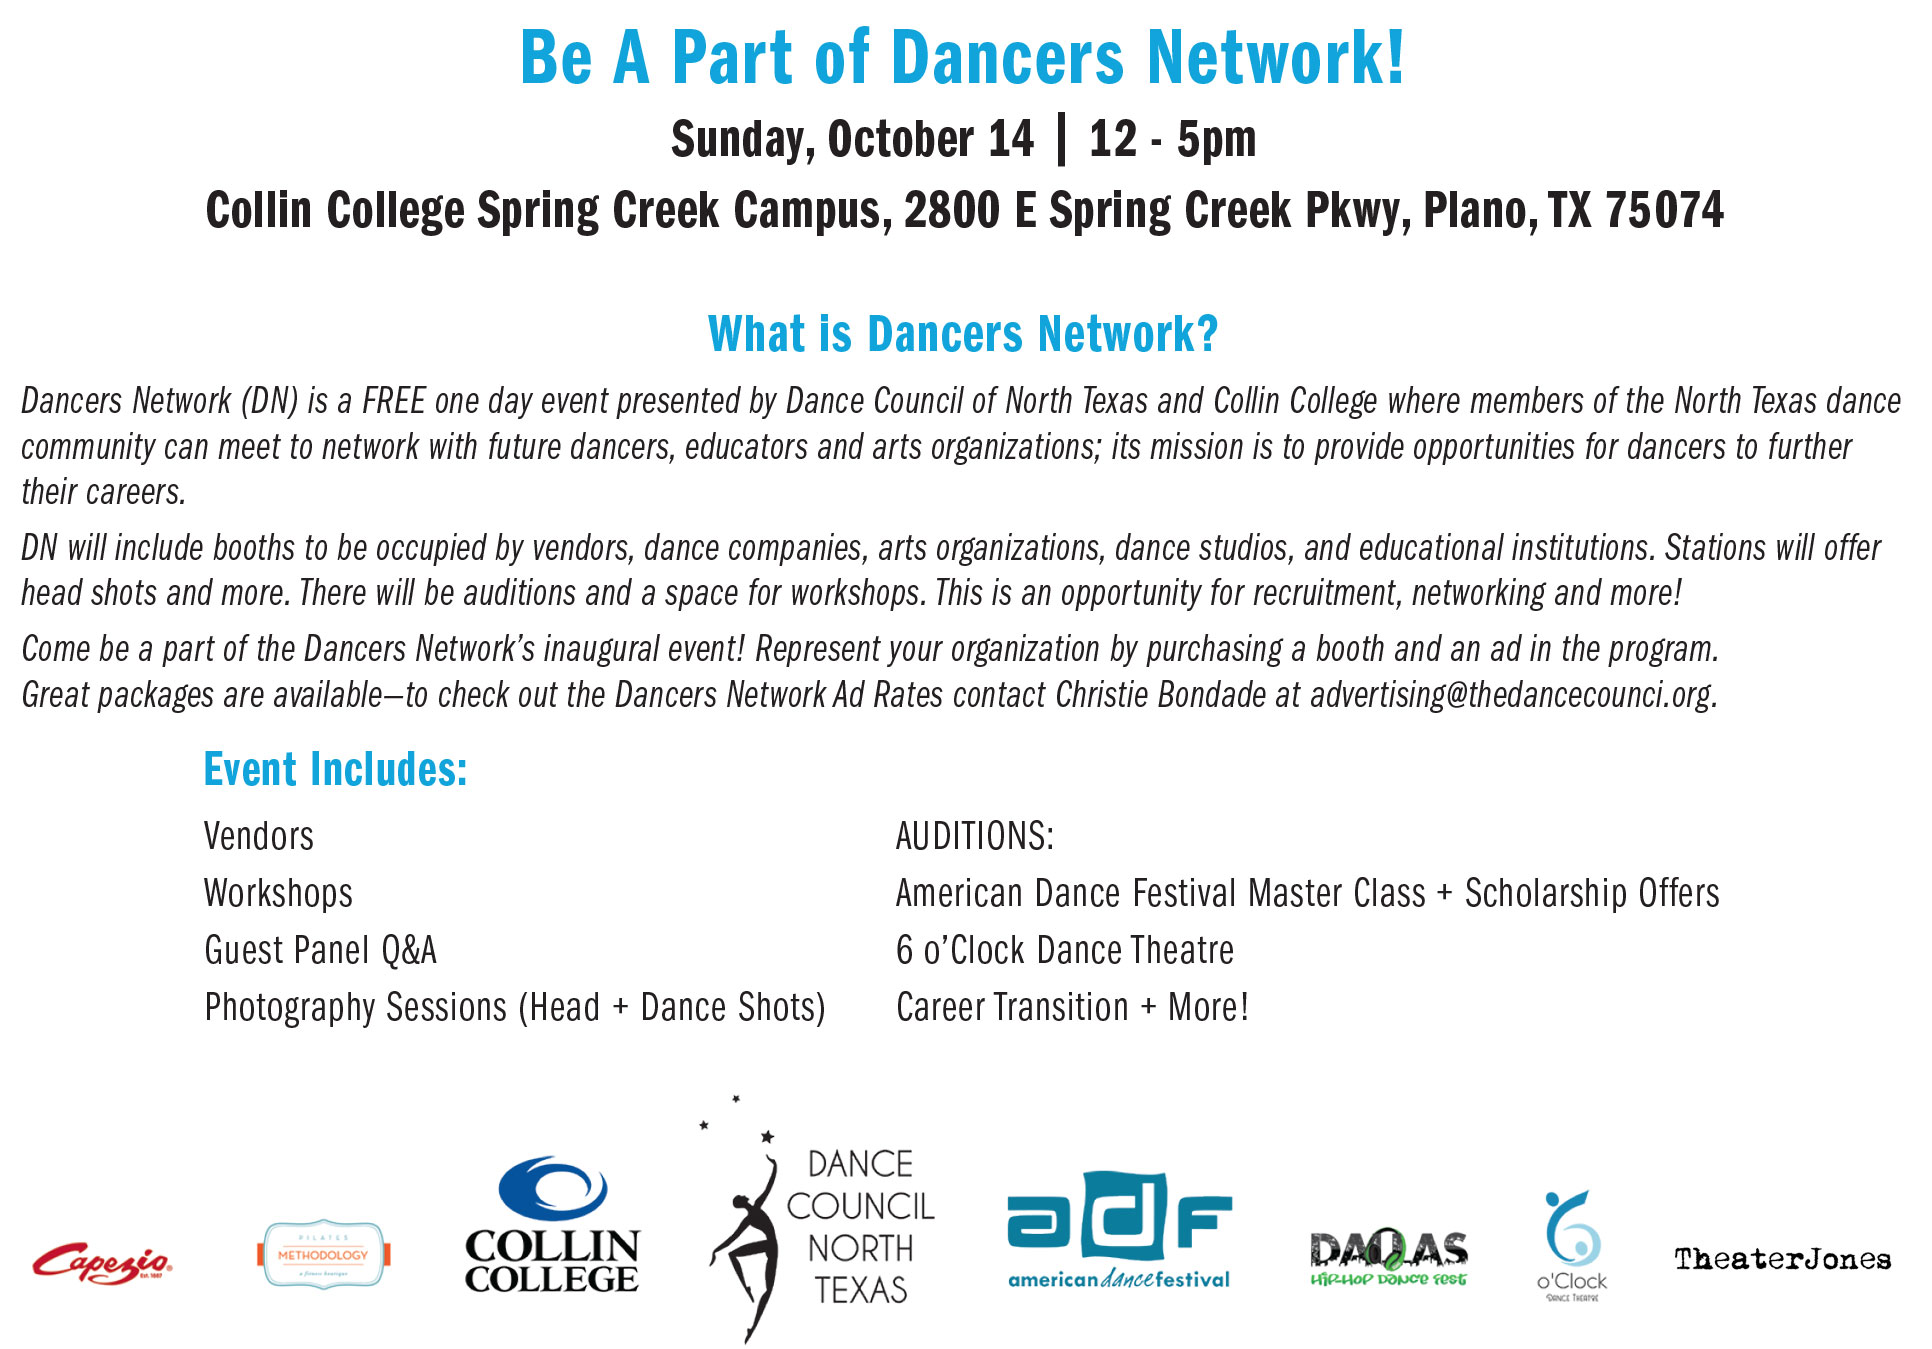 Dancers Network - Dance Council of North Texas